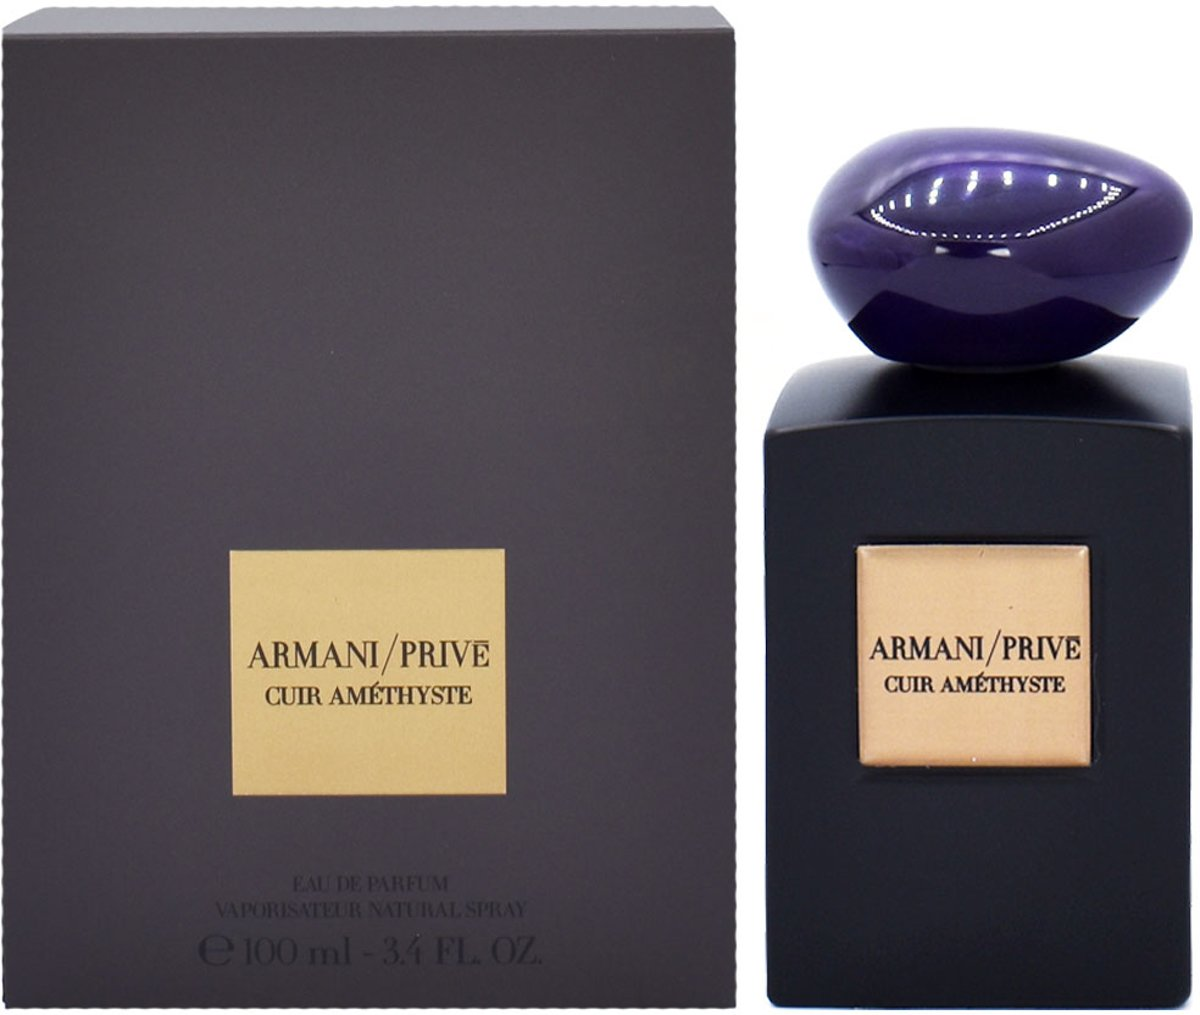 Armani Prive Cuir Amethyste 100ml EDP Spray